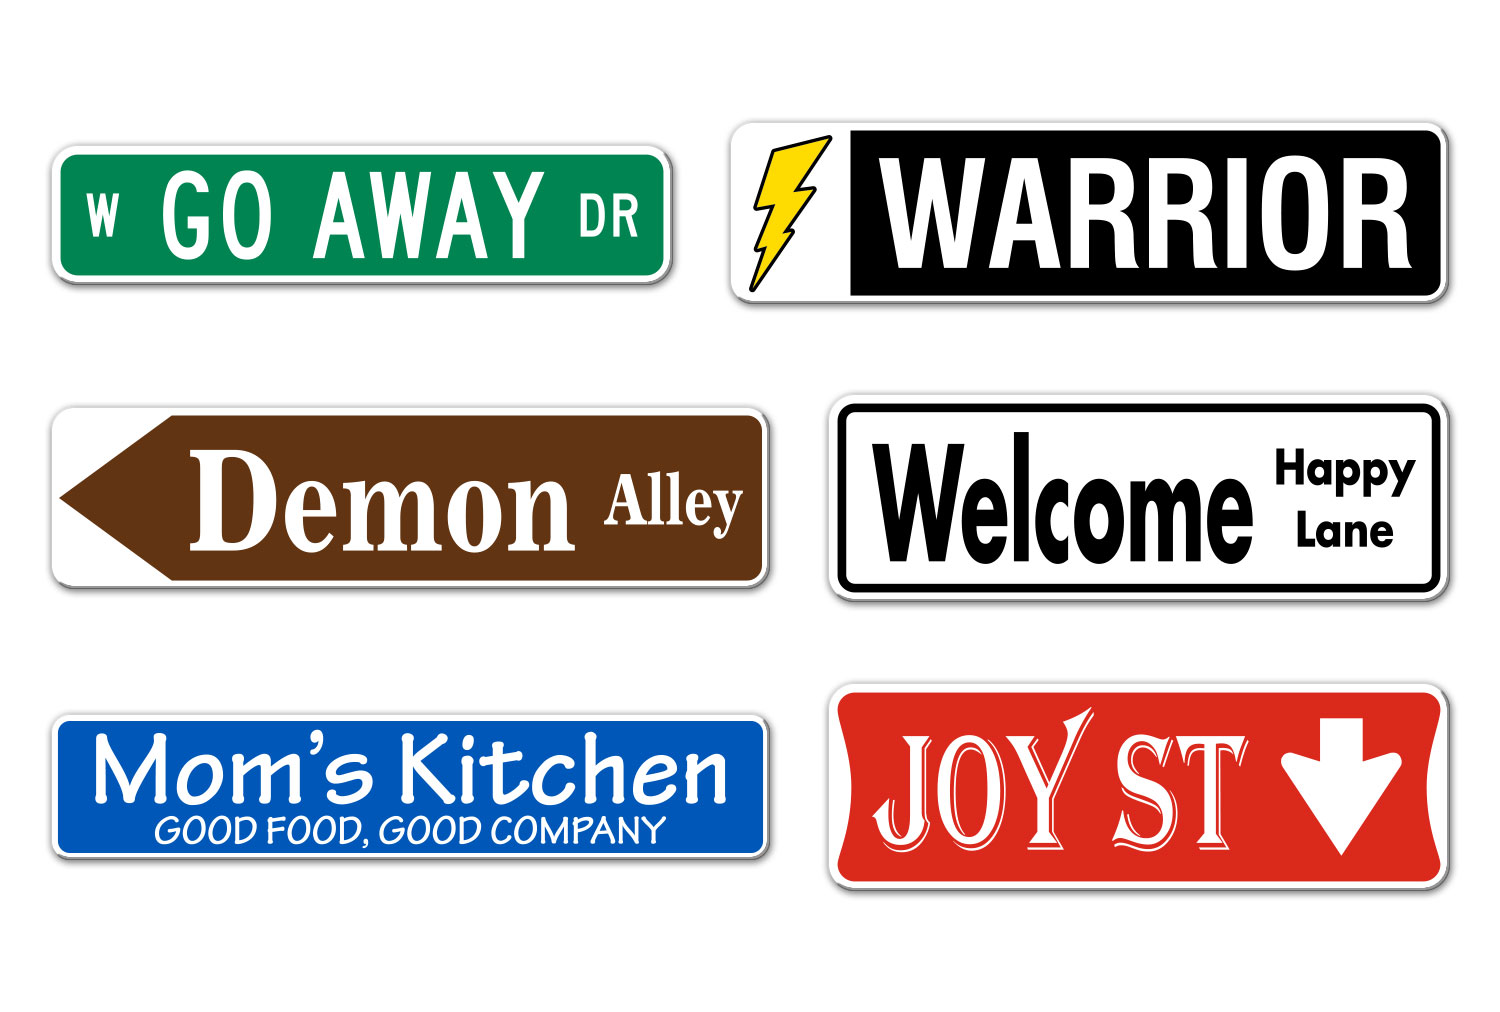 Samples of Printed Personalized Street Name Signs